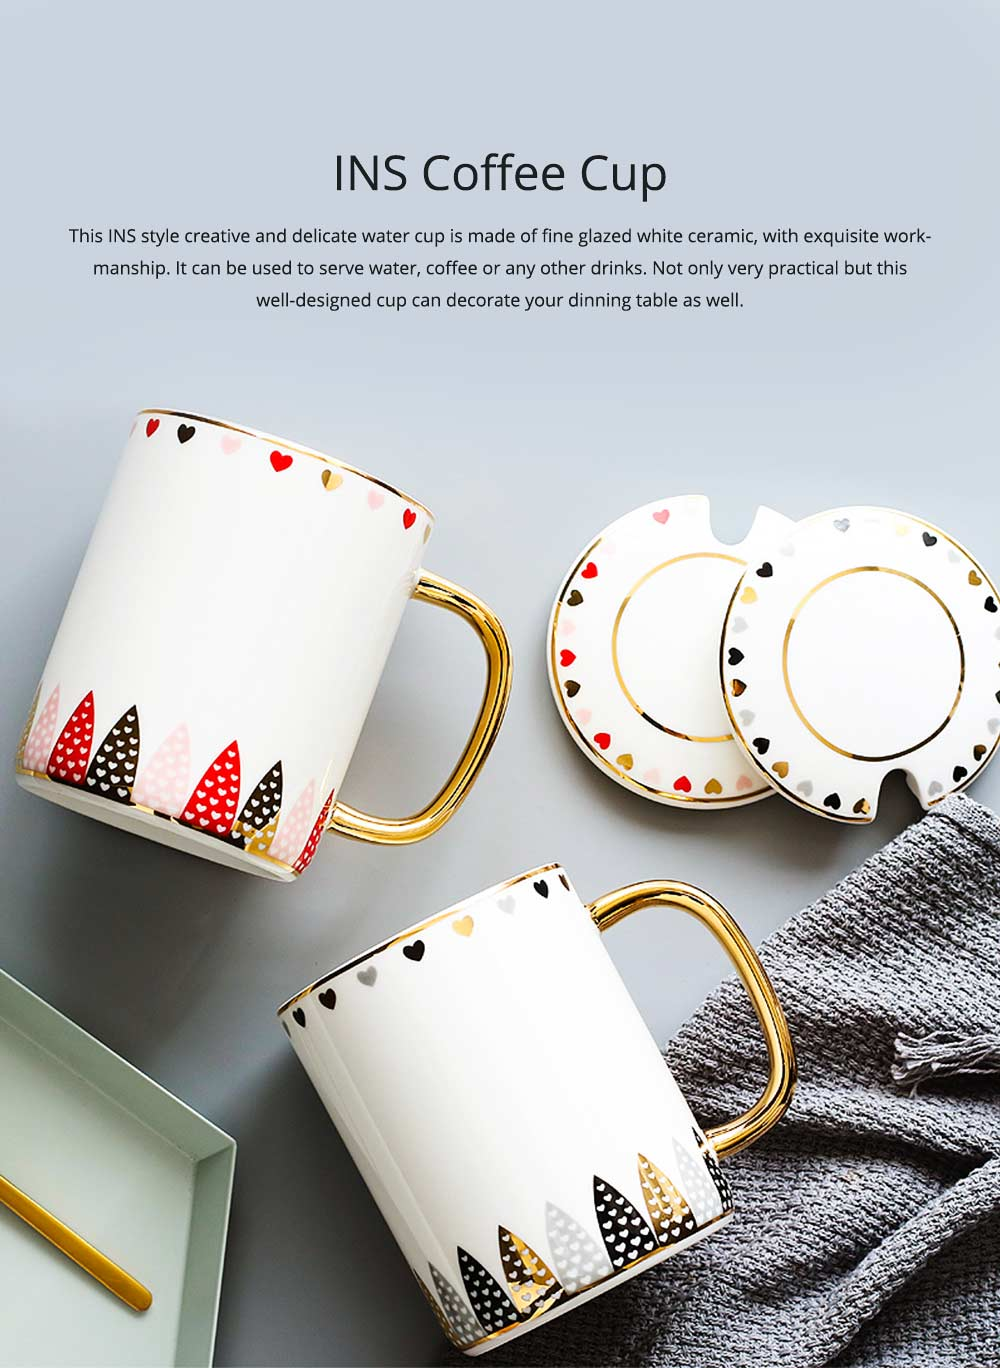 INS Creative Mug Cute and Simple Nordic Ceramic Couple Coffee Cup With Lid and Spoon High Quality Glazed Water Cup for Office and Home Using 0